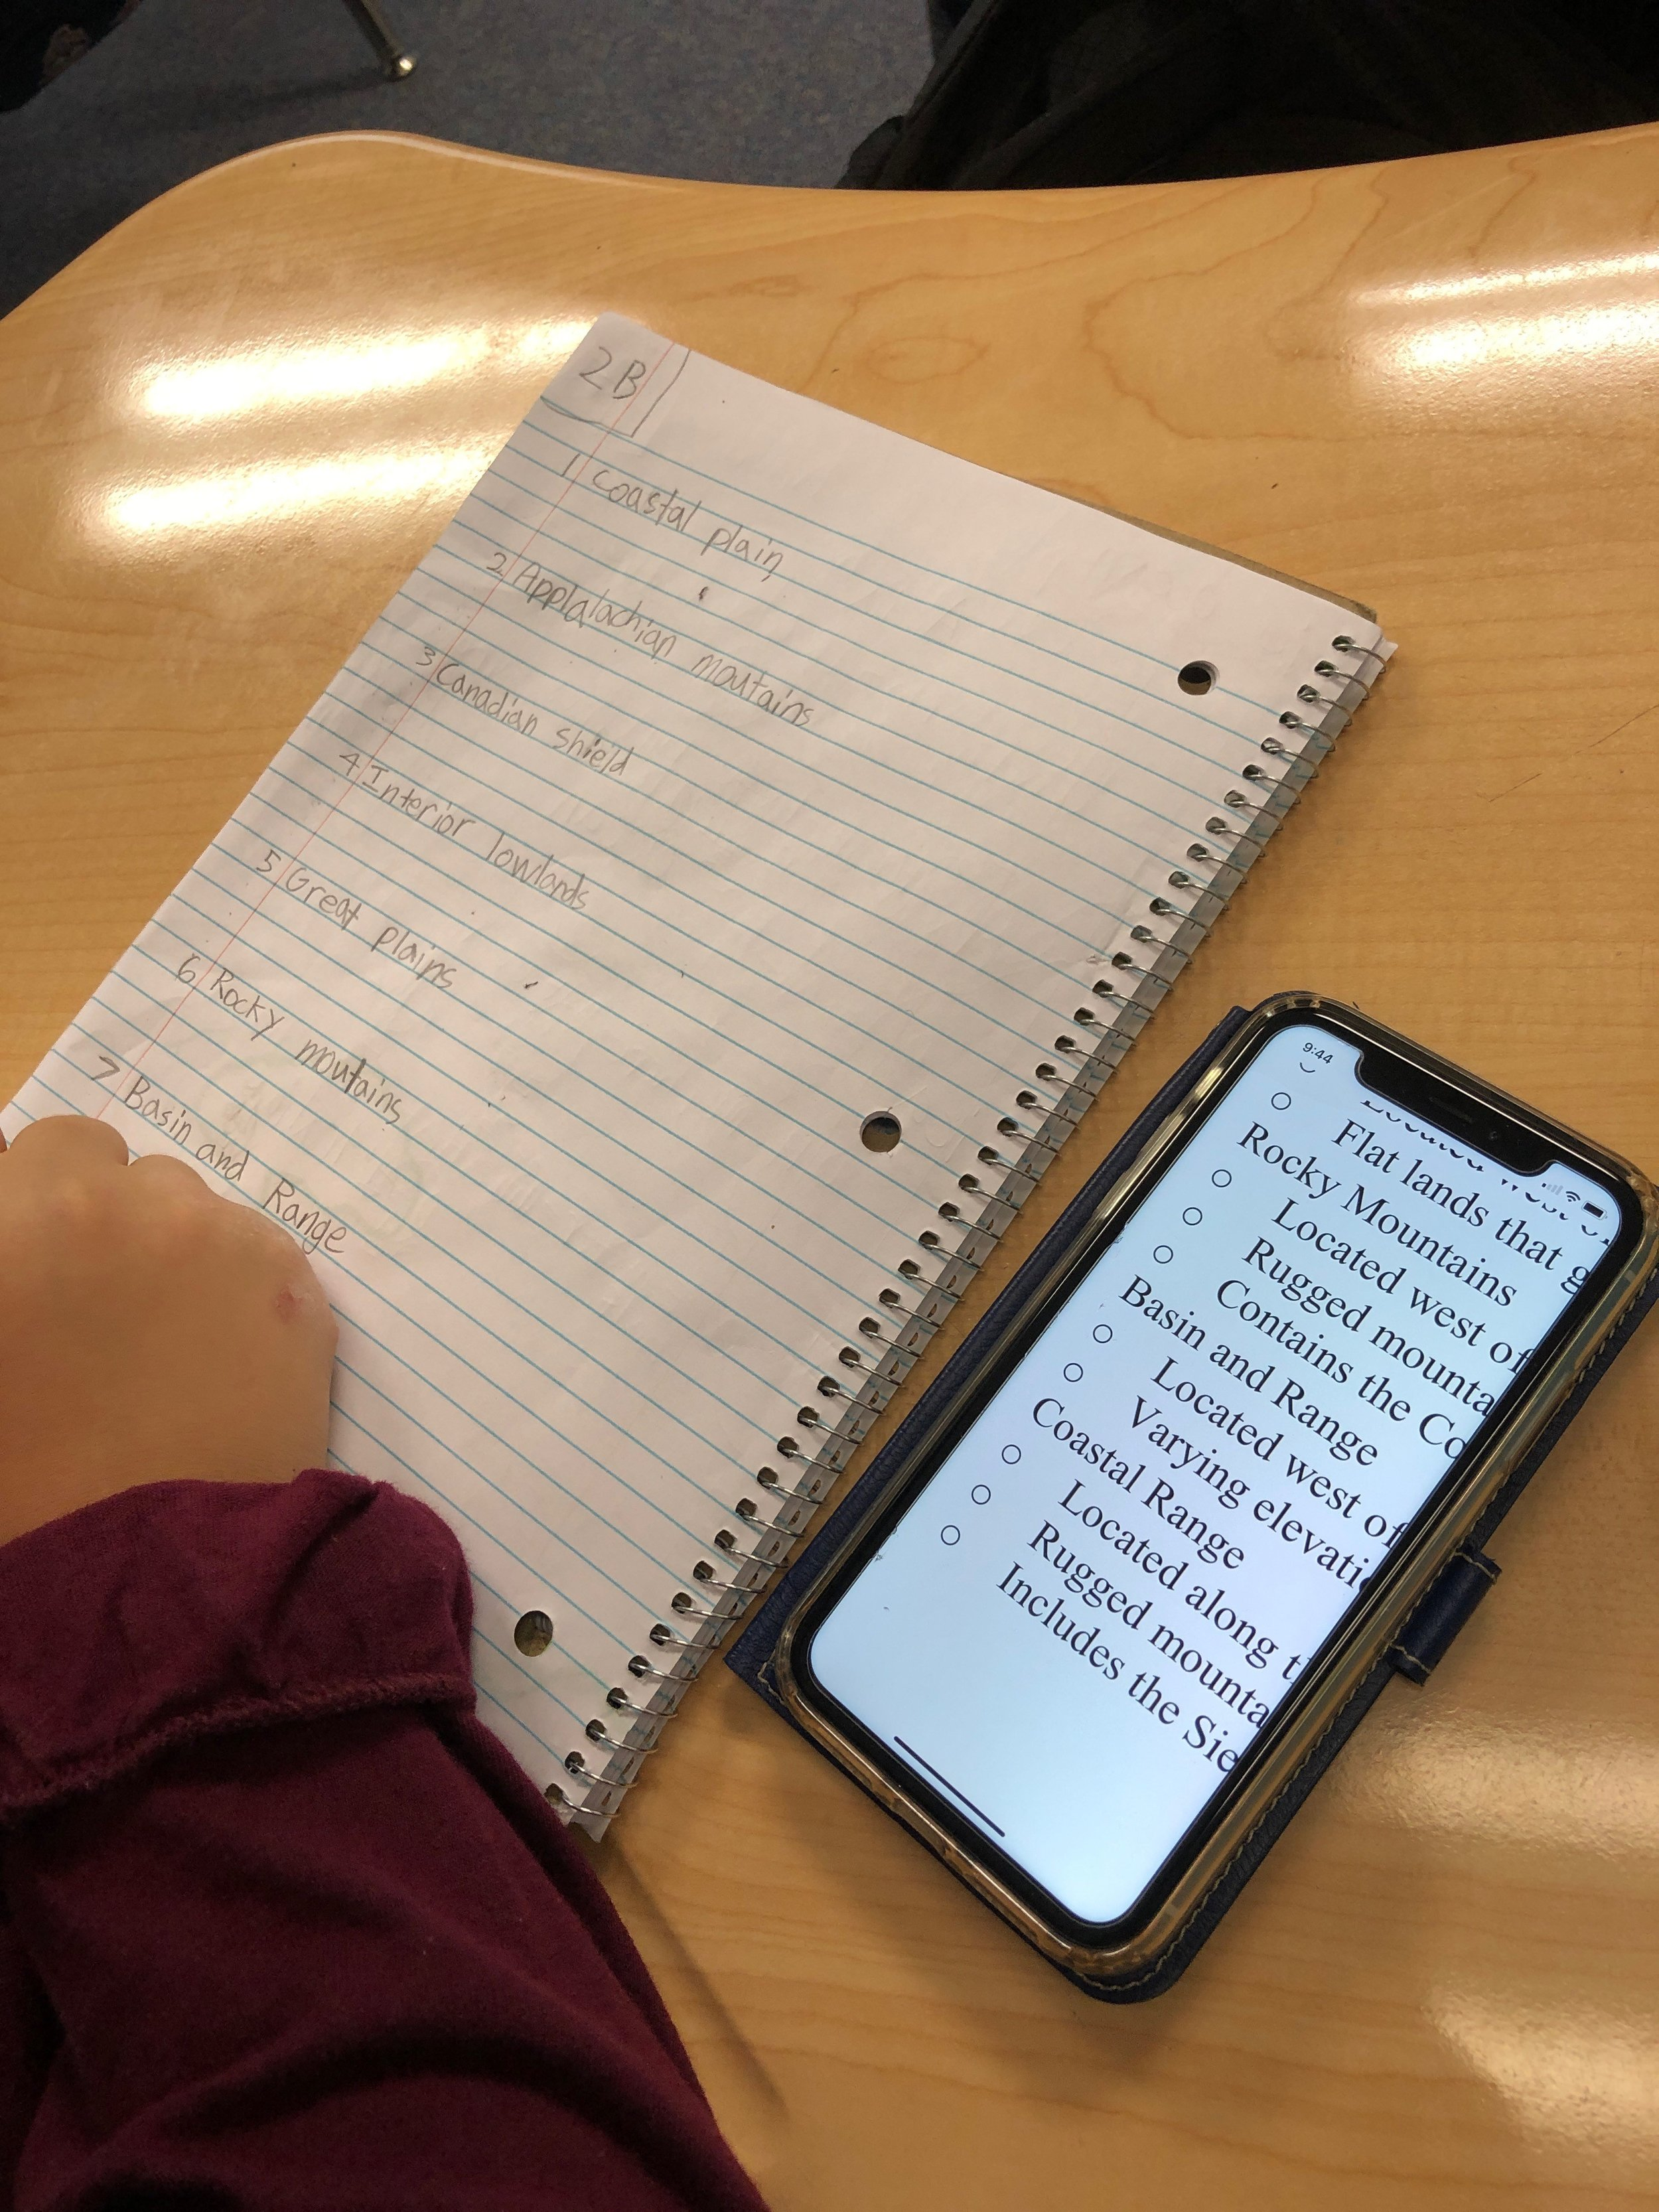 Using a personal device to reference the Standard of Learning (SOL) is appropriate use of technology.